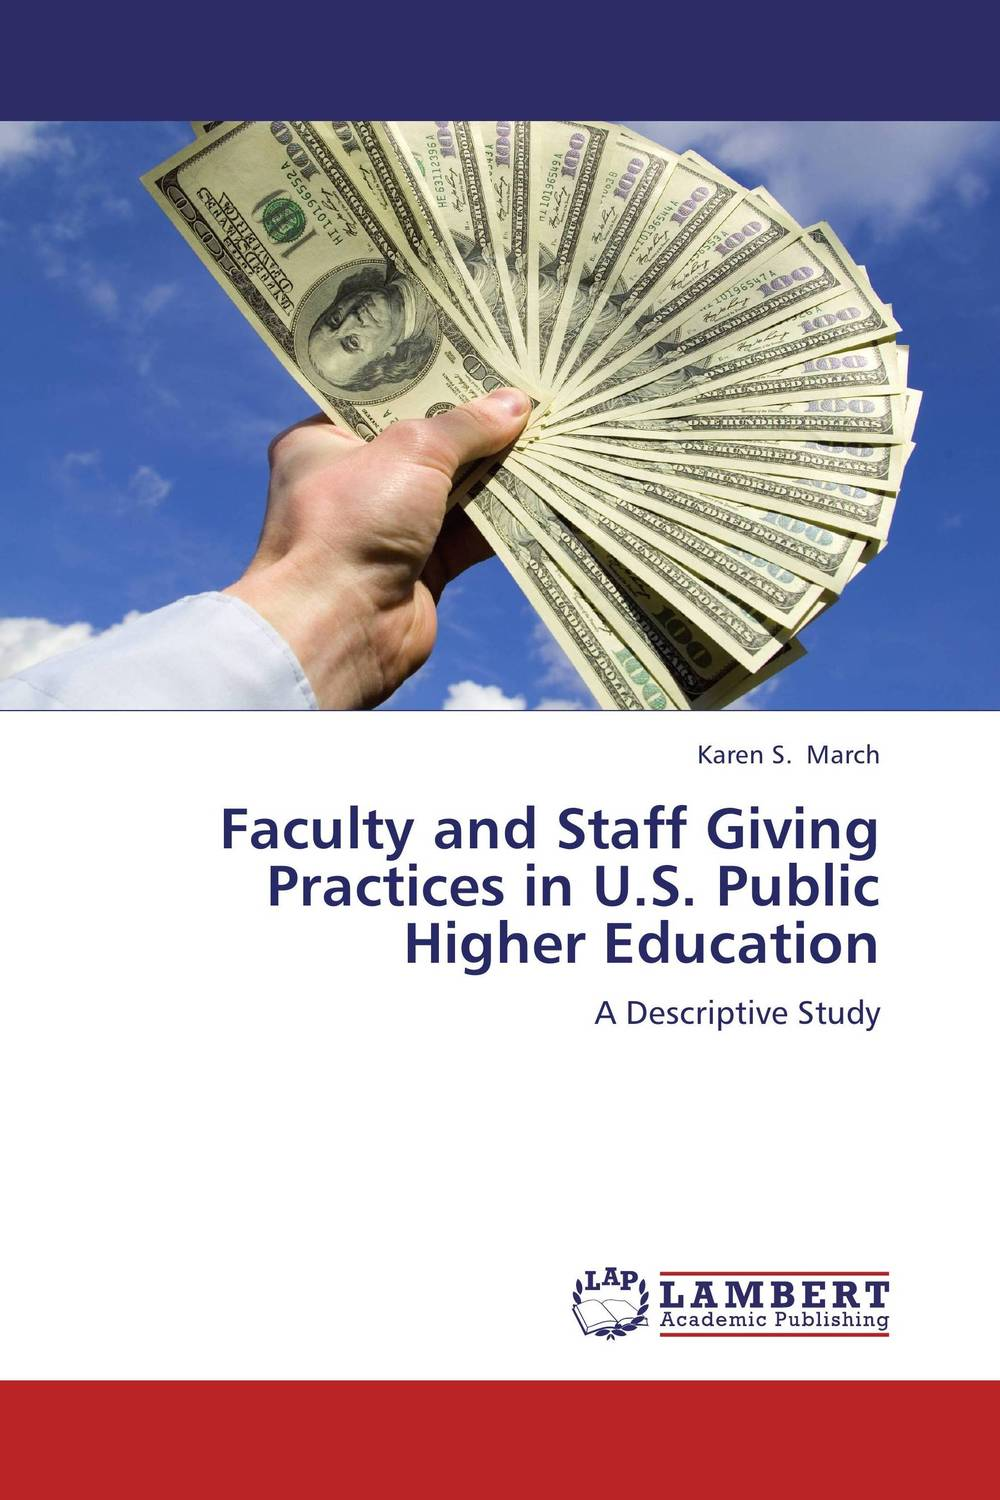 Faculty and Staff Giving Practices in U.S. Public Higher Education